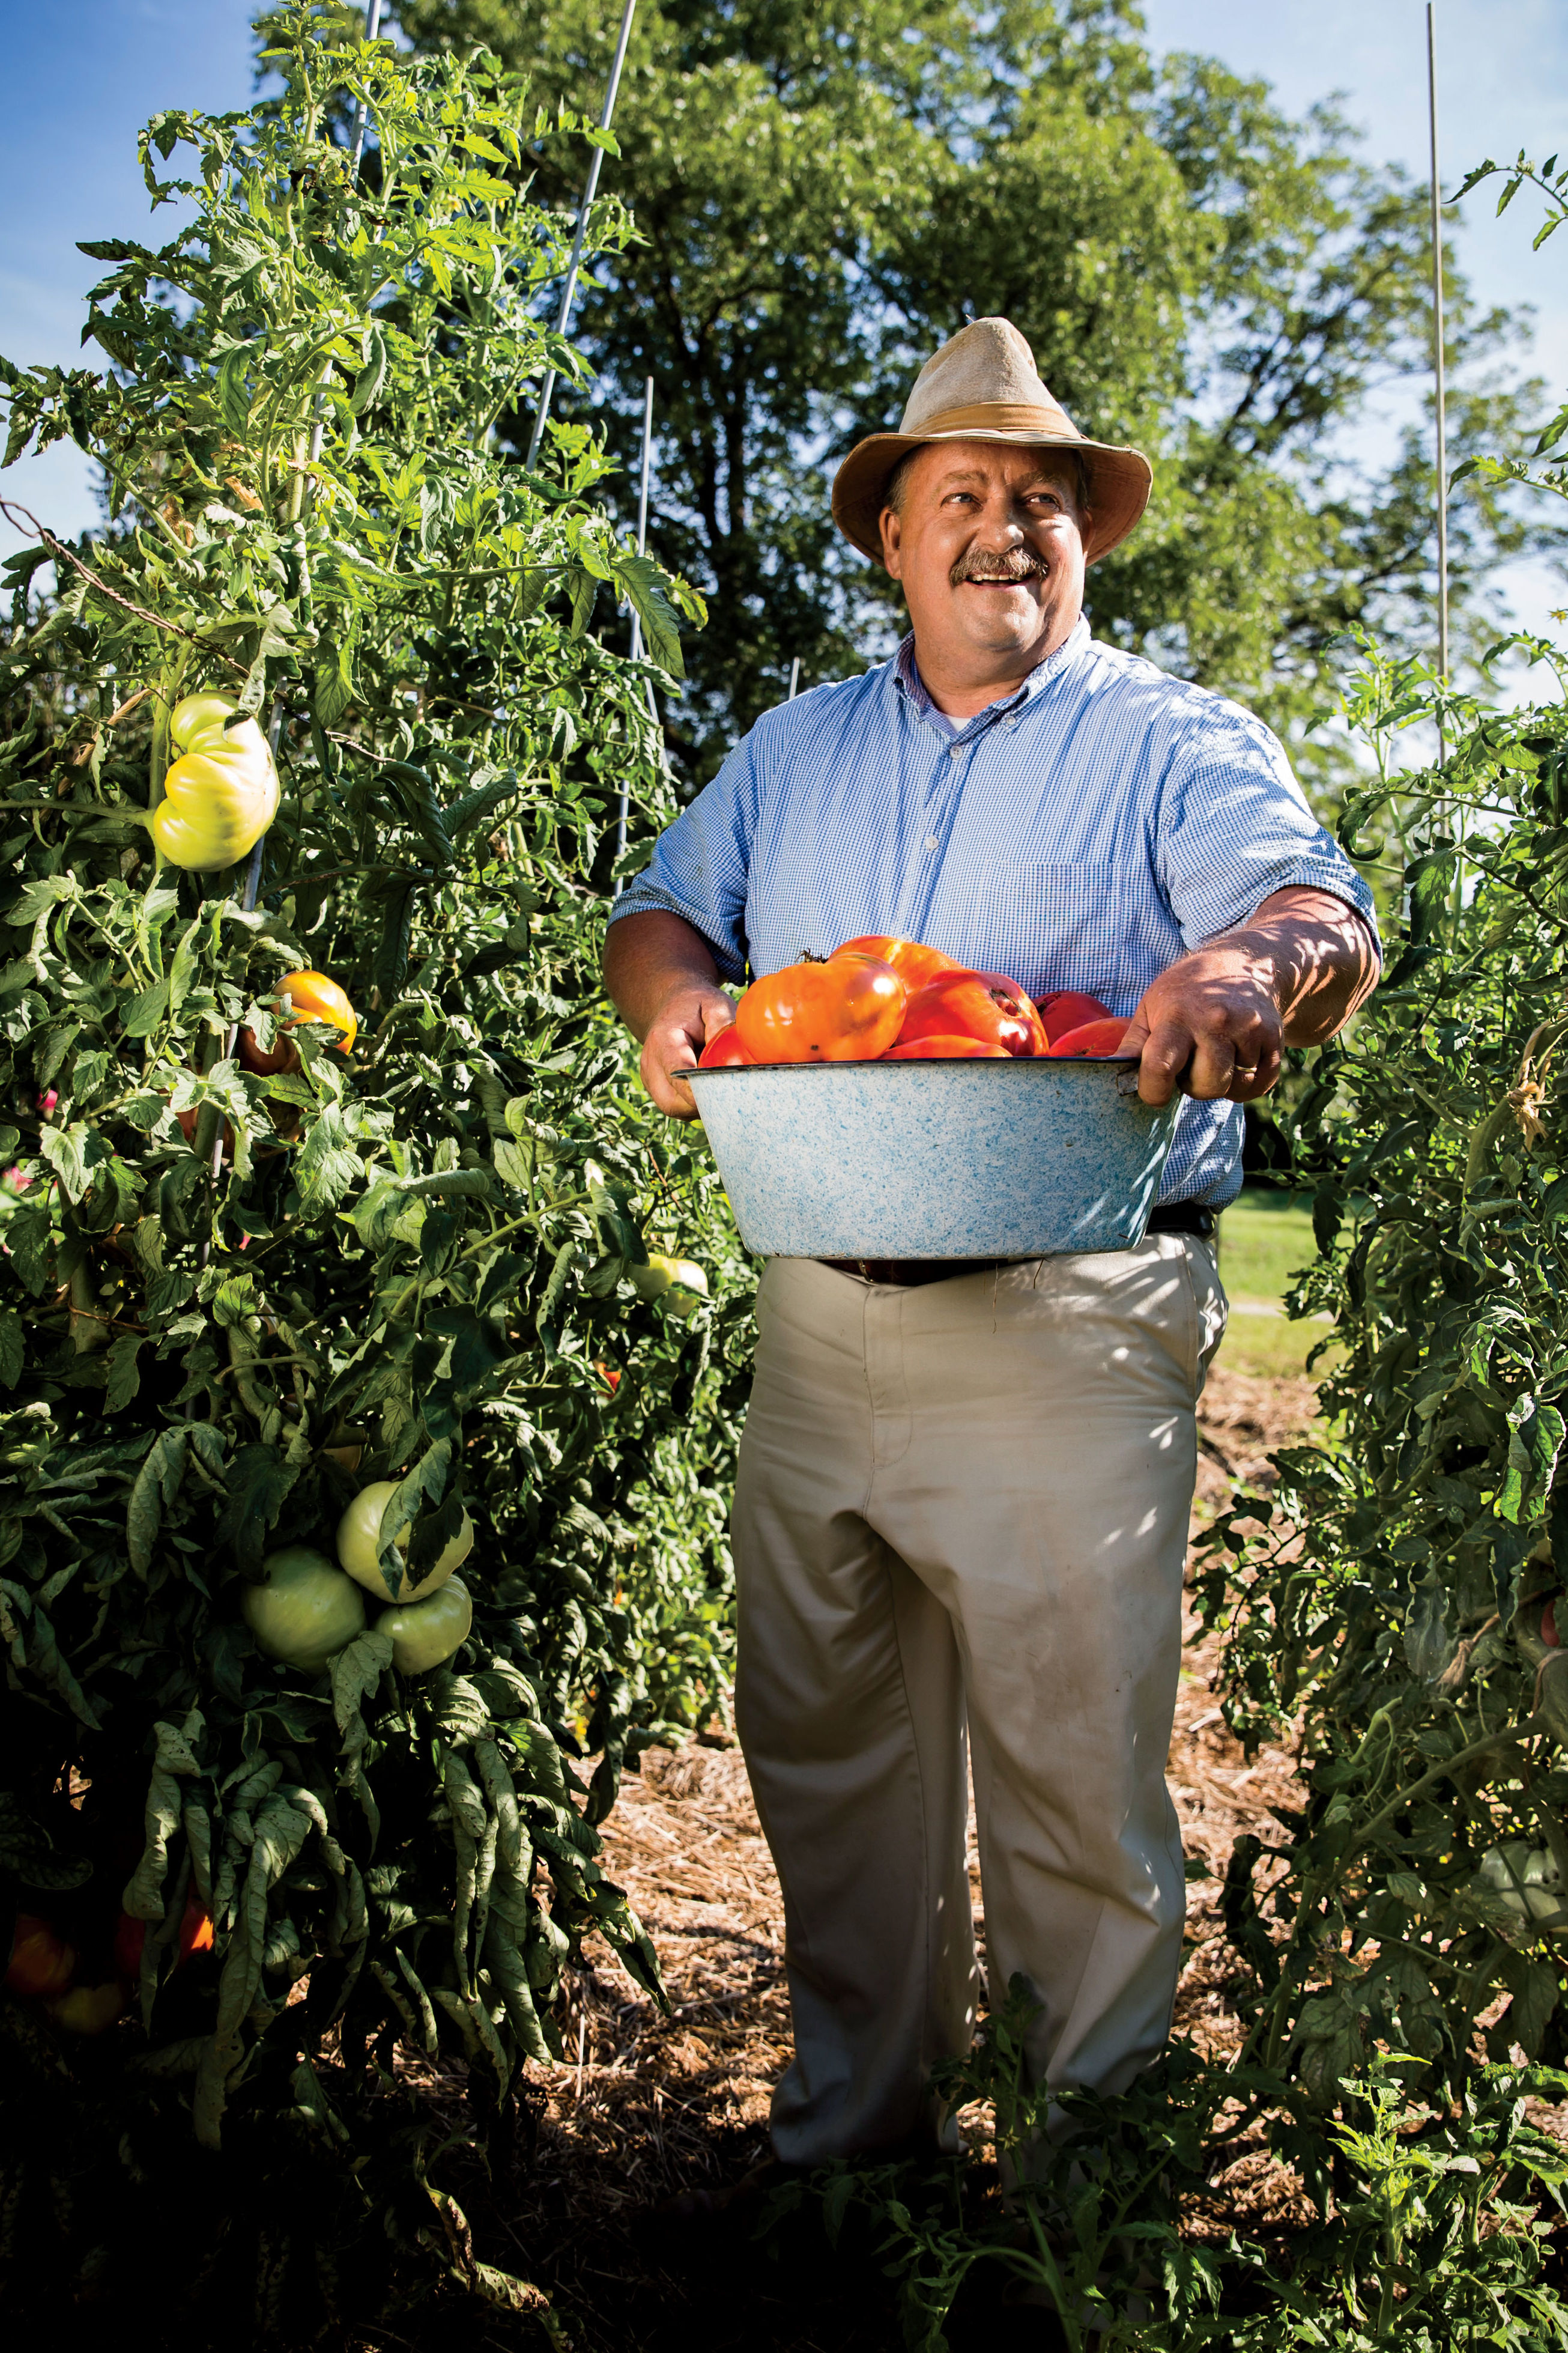 Meet the South's Tomato Man